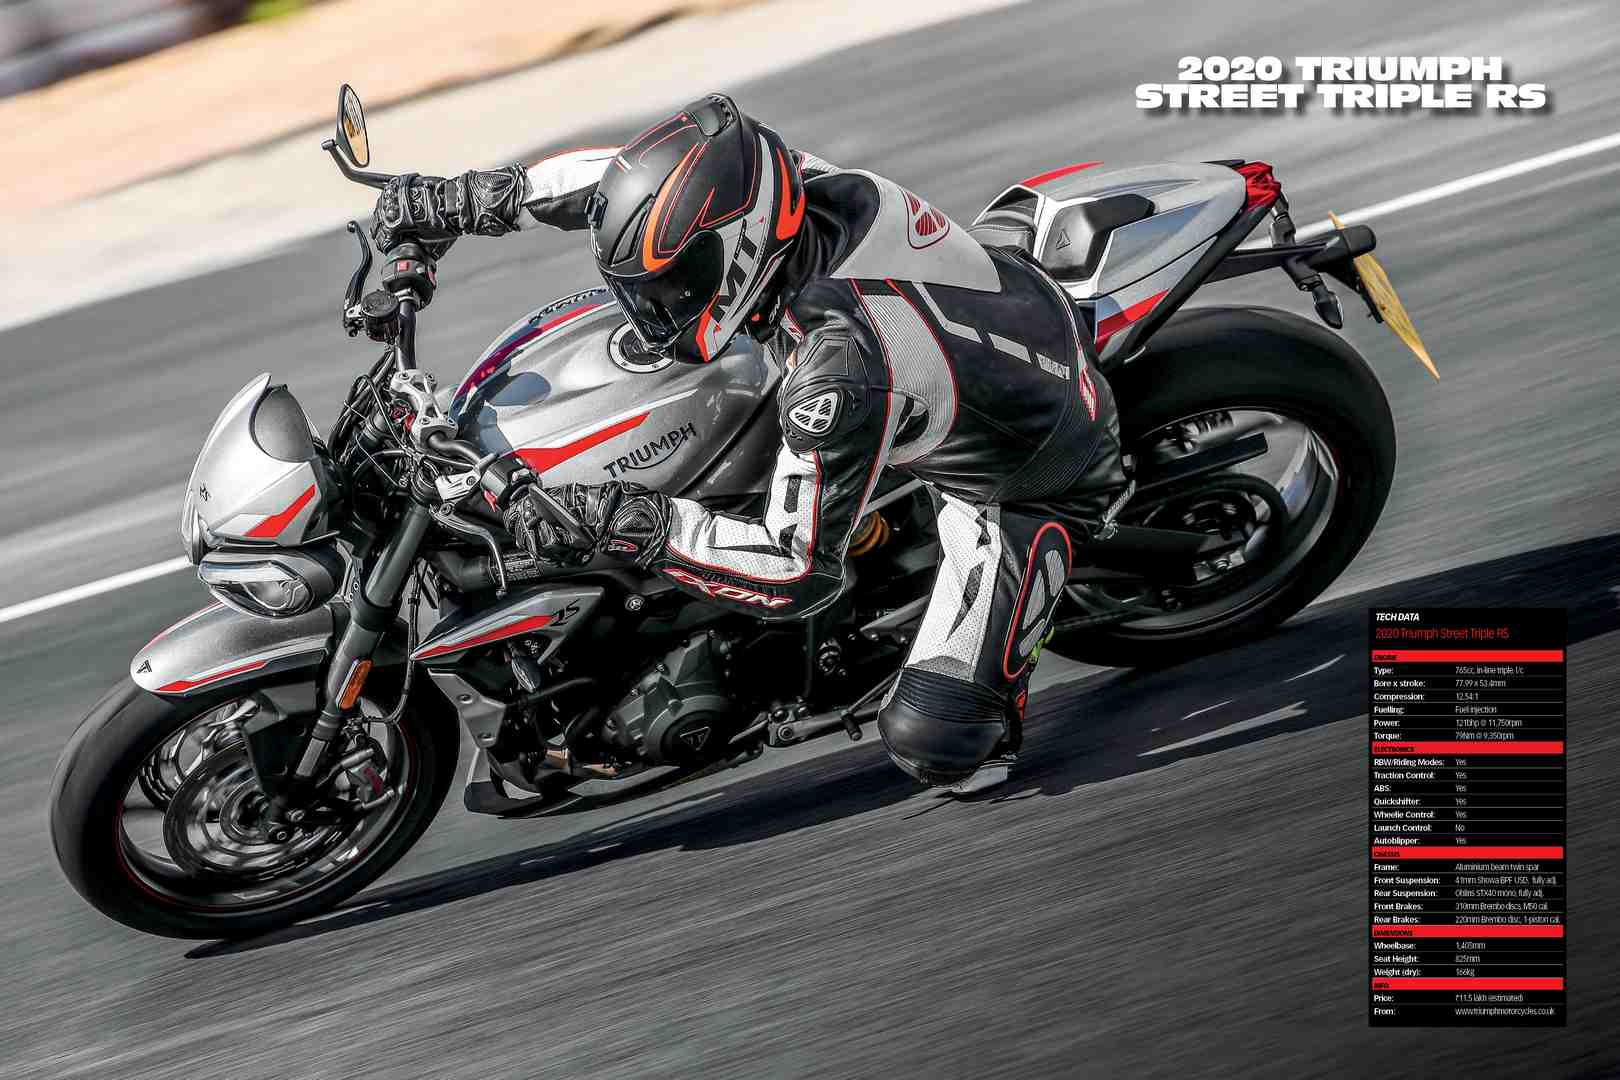 Fast Bikes India-2020 Triumph Street Triple RS #2 (Limited Edition) | Poster